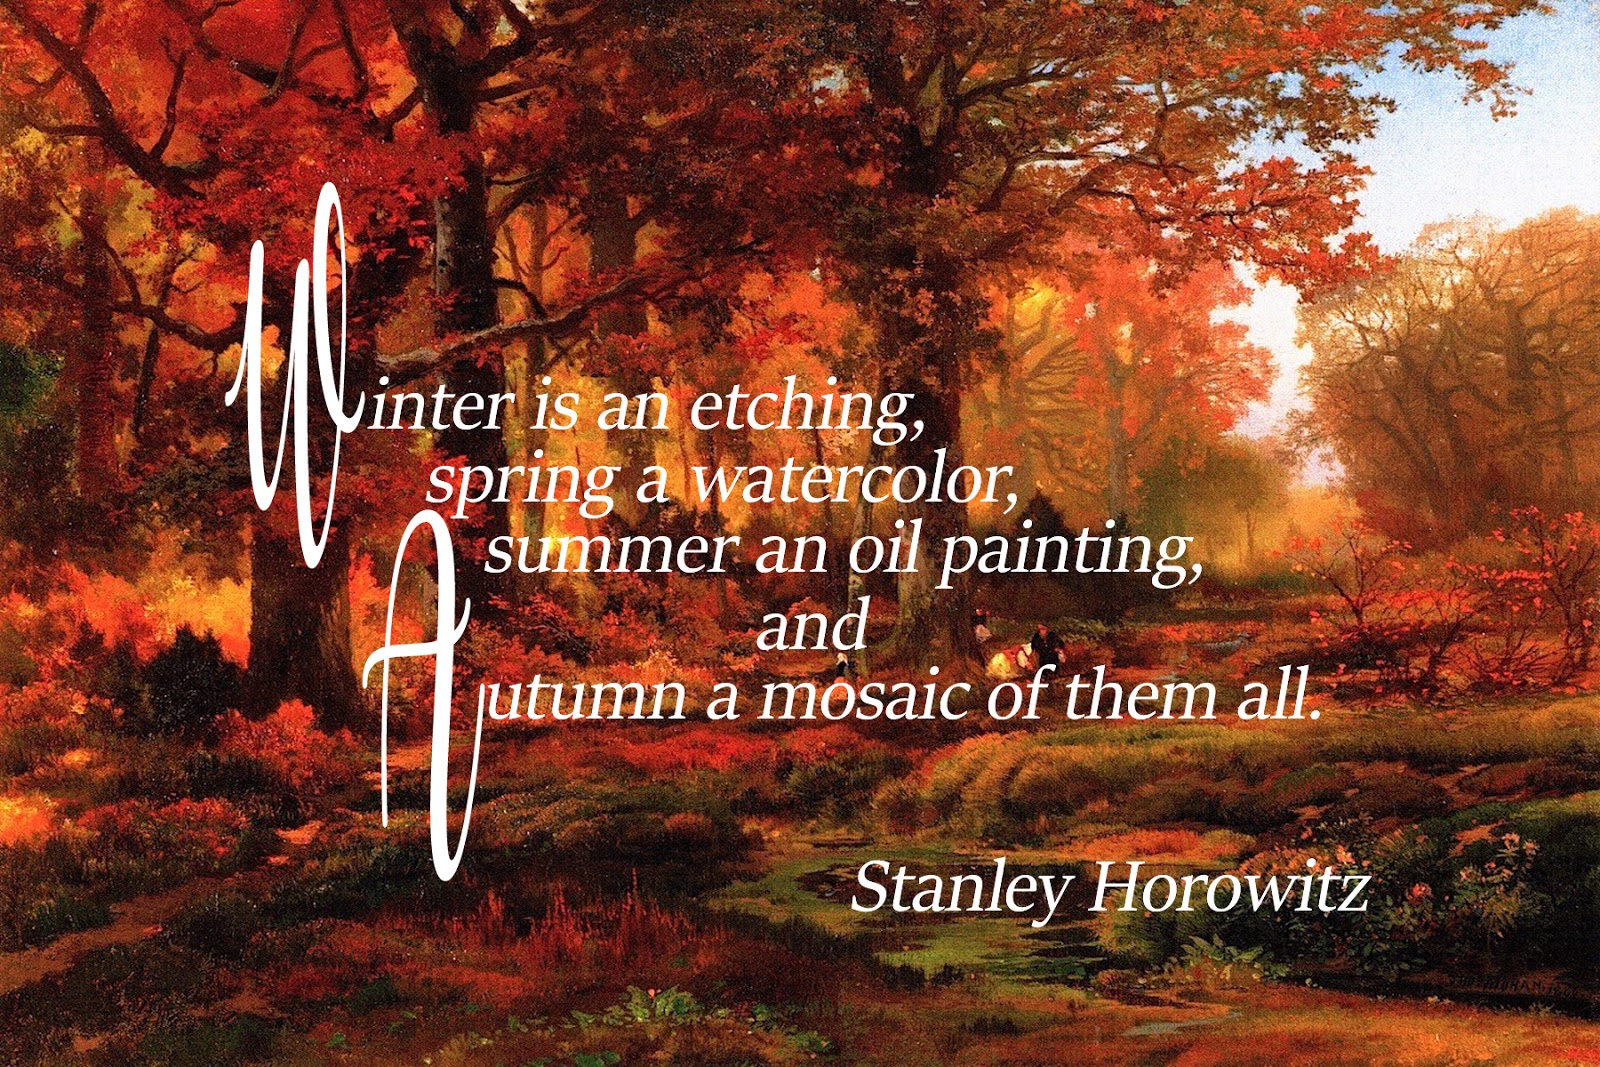 CELEBRATING AUTUMN - Fall Quotes, Art & Folklore | Enchanted ...